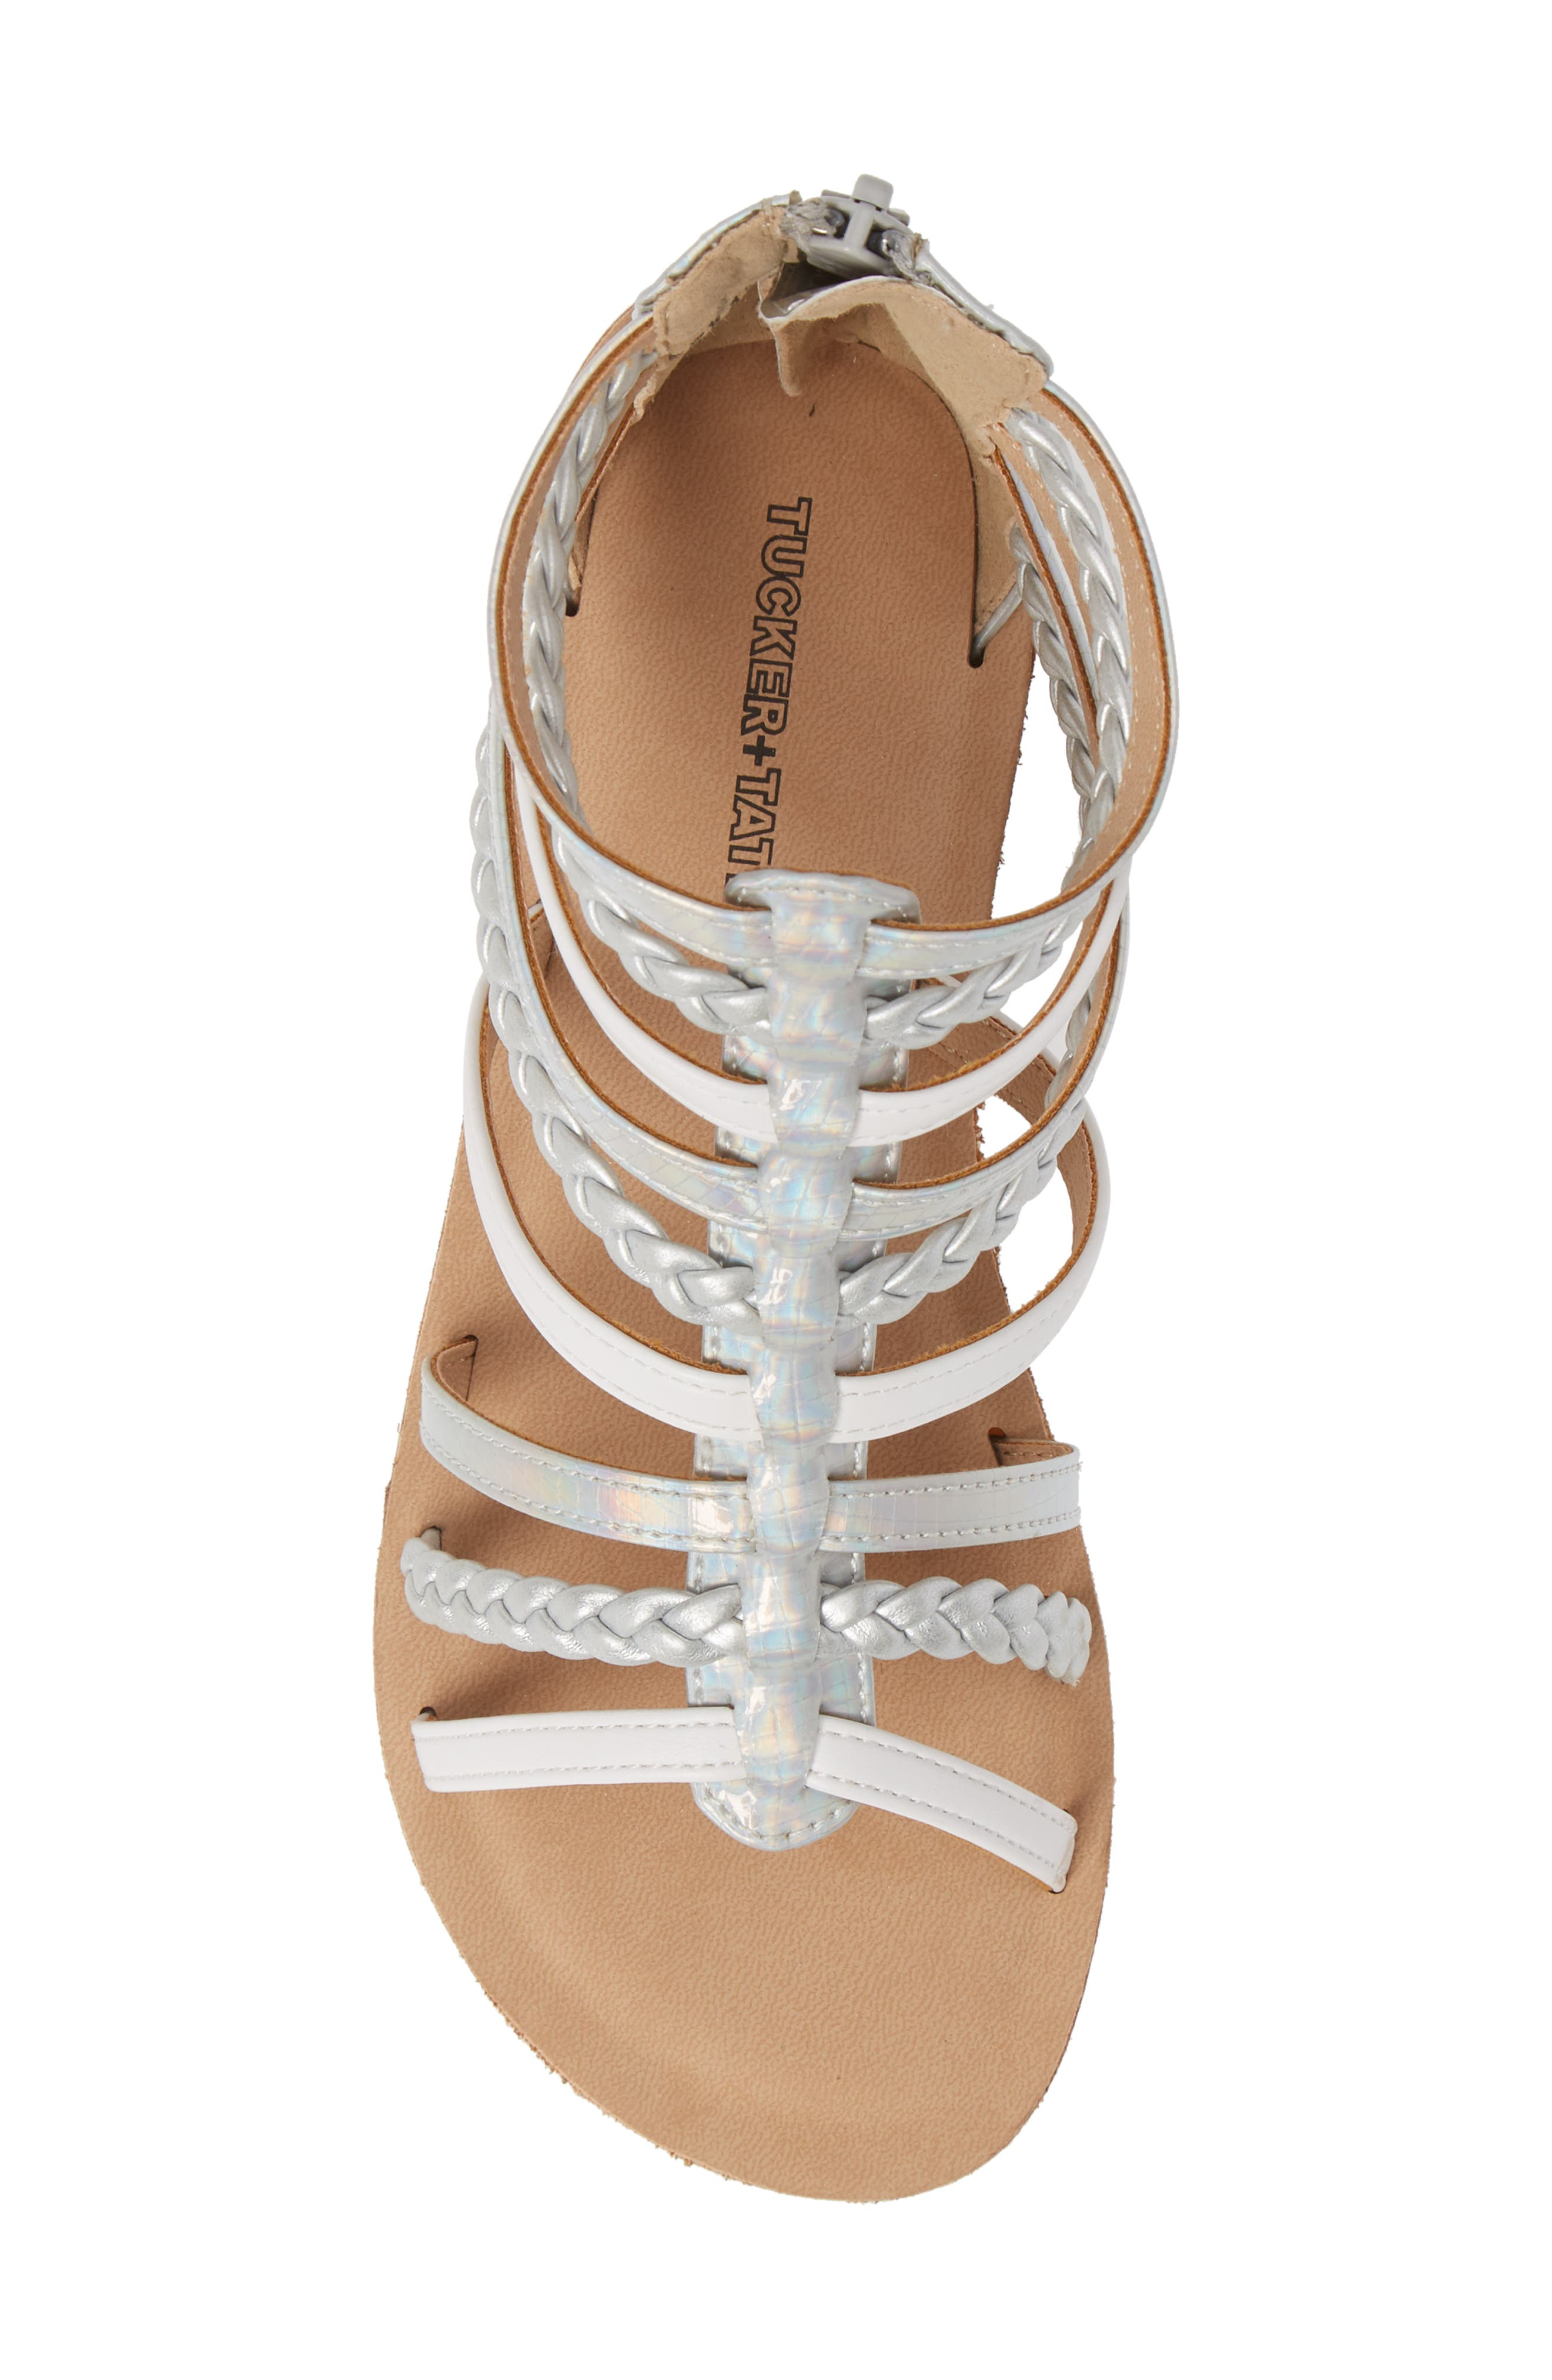 Sonja Braided Gladiator Sandal,                             Alternate thumbnail 5, color,                             WHITE/SILVER FAUX LEATHER